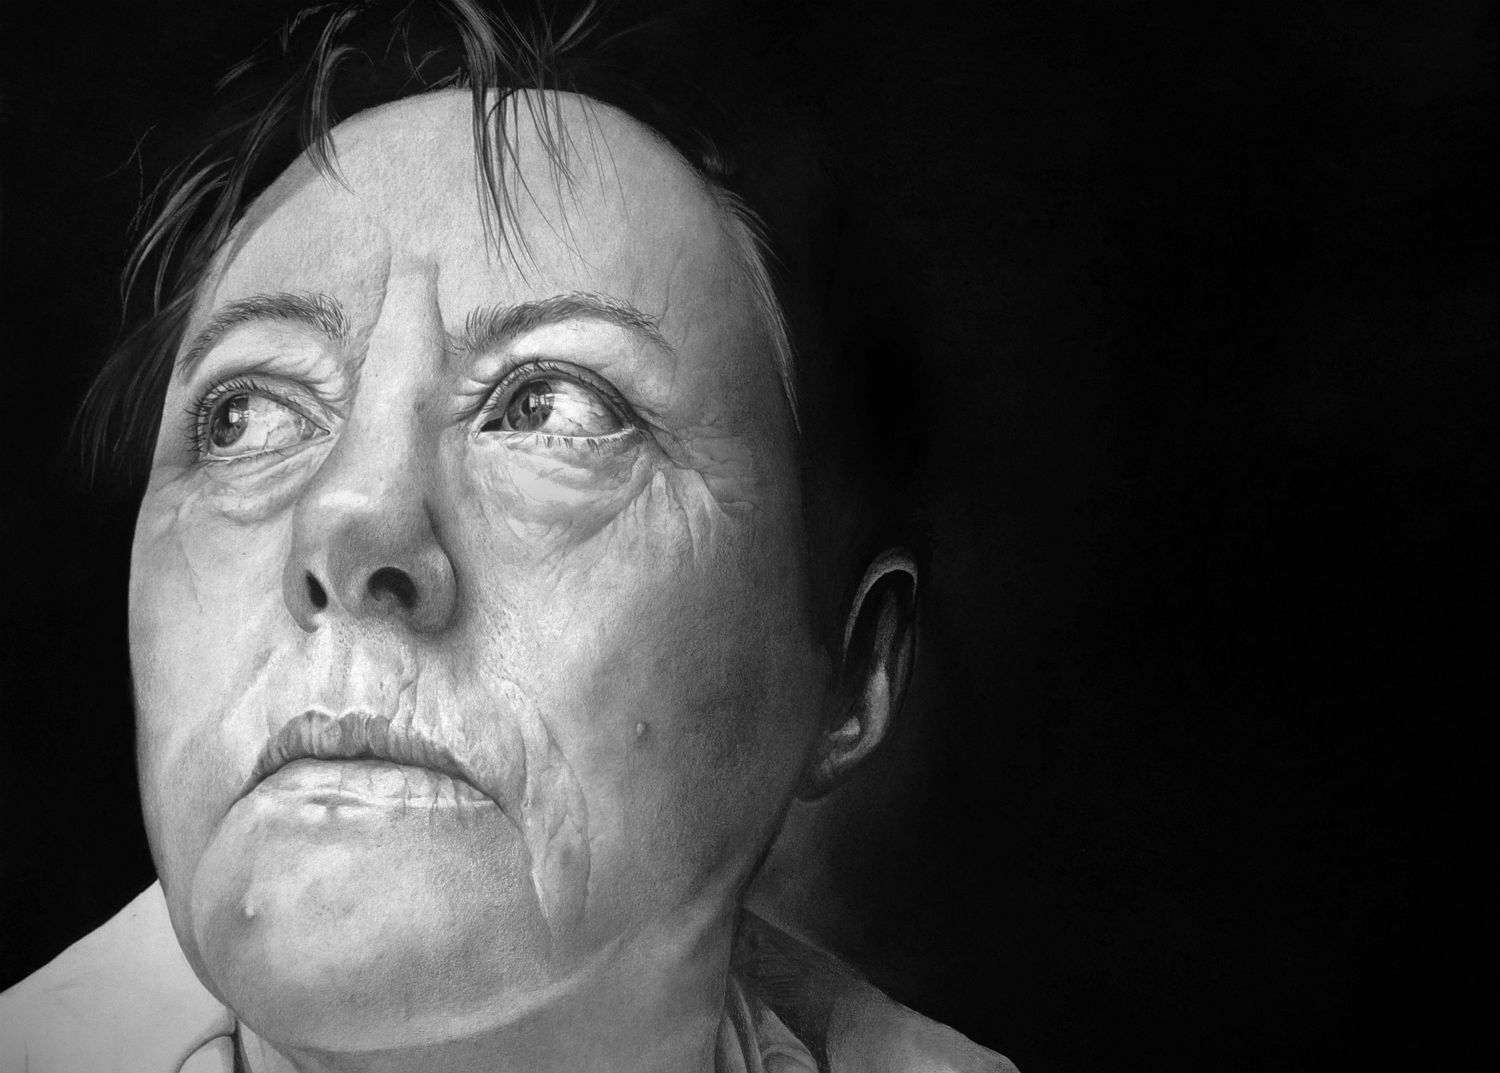 black white portrait hyper realism pencil